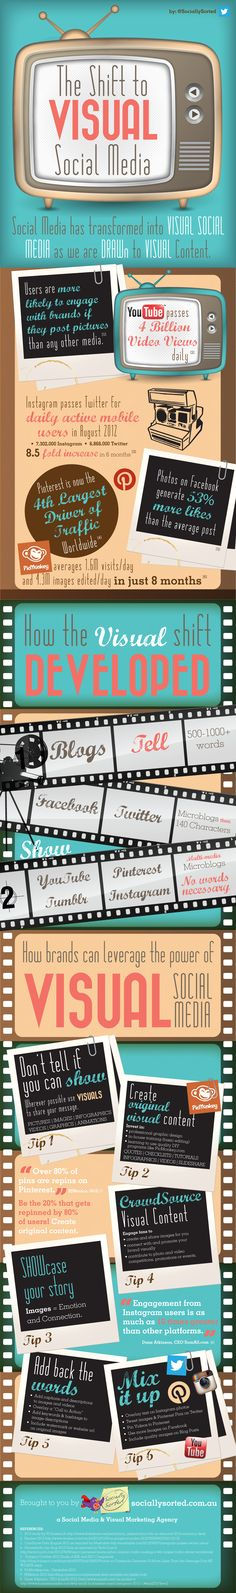 How important images have become to Social Media marketing [Infographic]